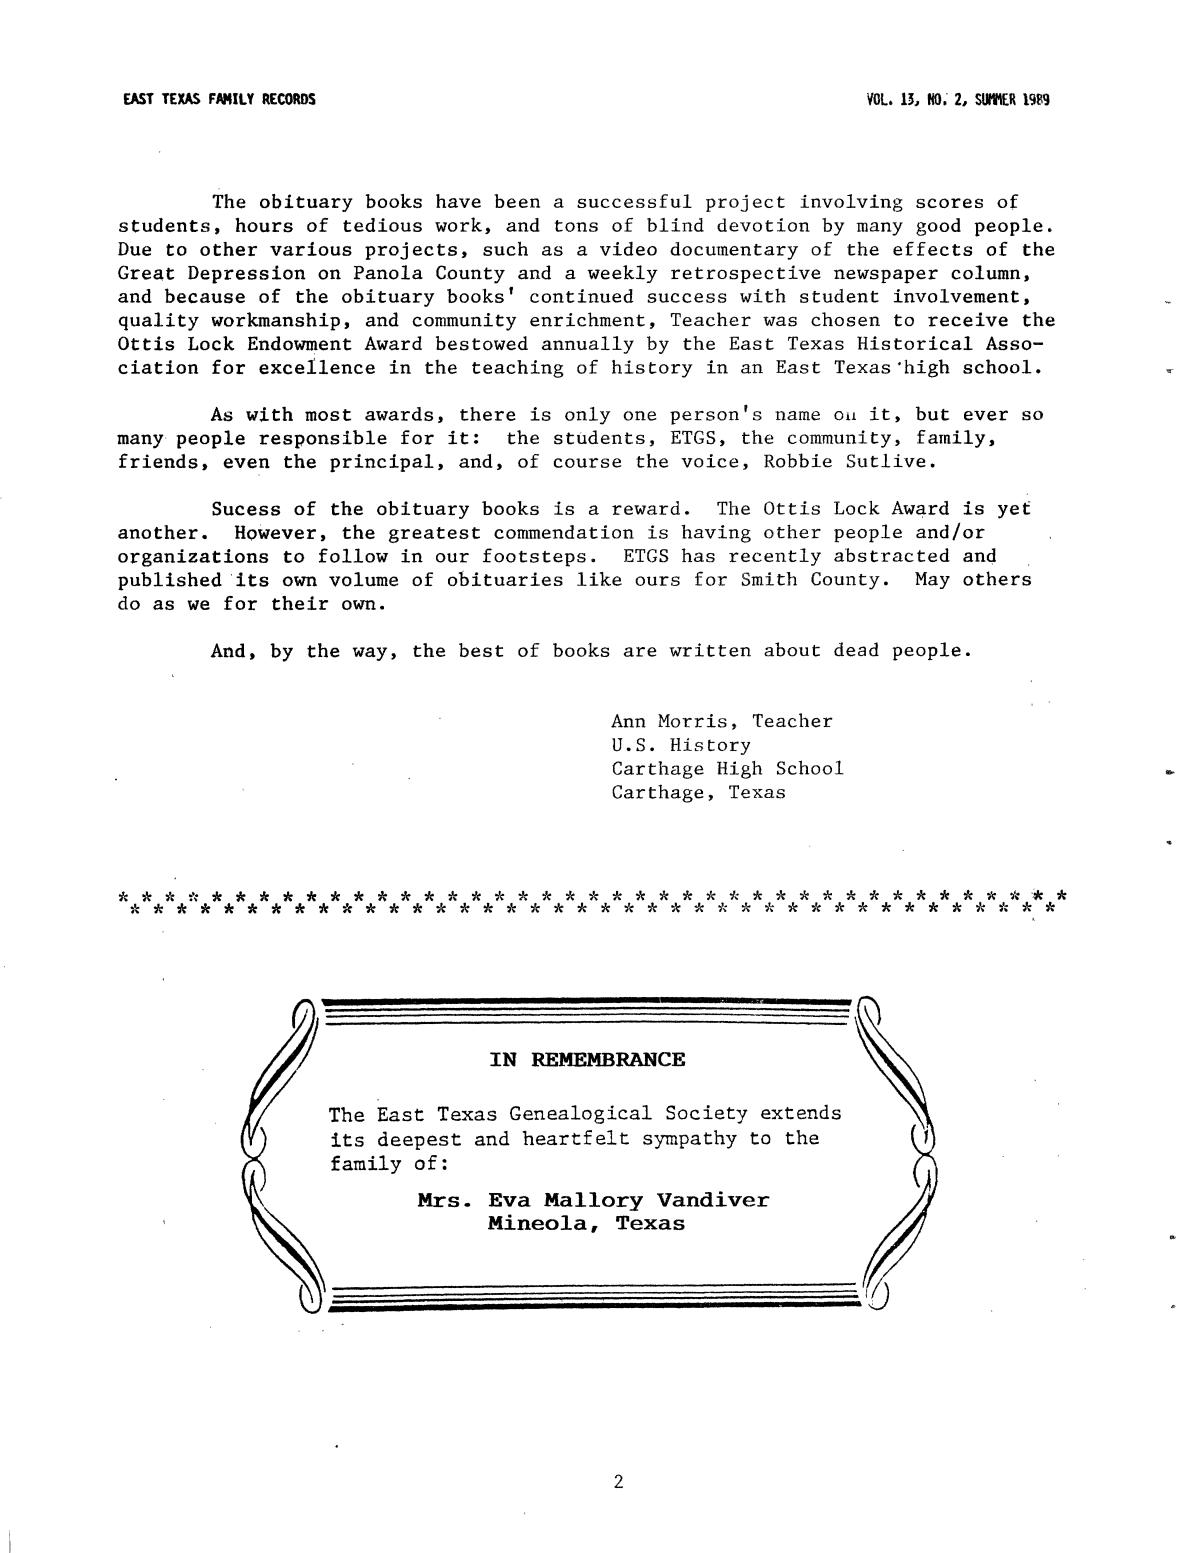 East Texas Family Records, Volume 13, Number 2, Summer 1989                                                                                                      2